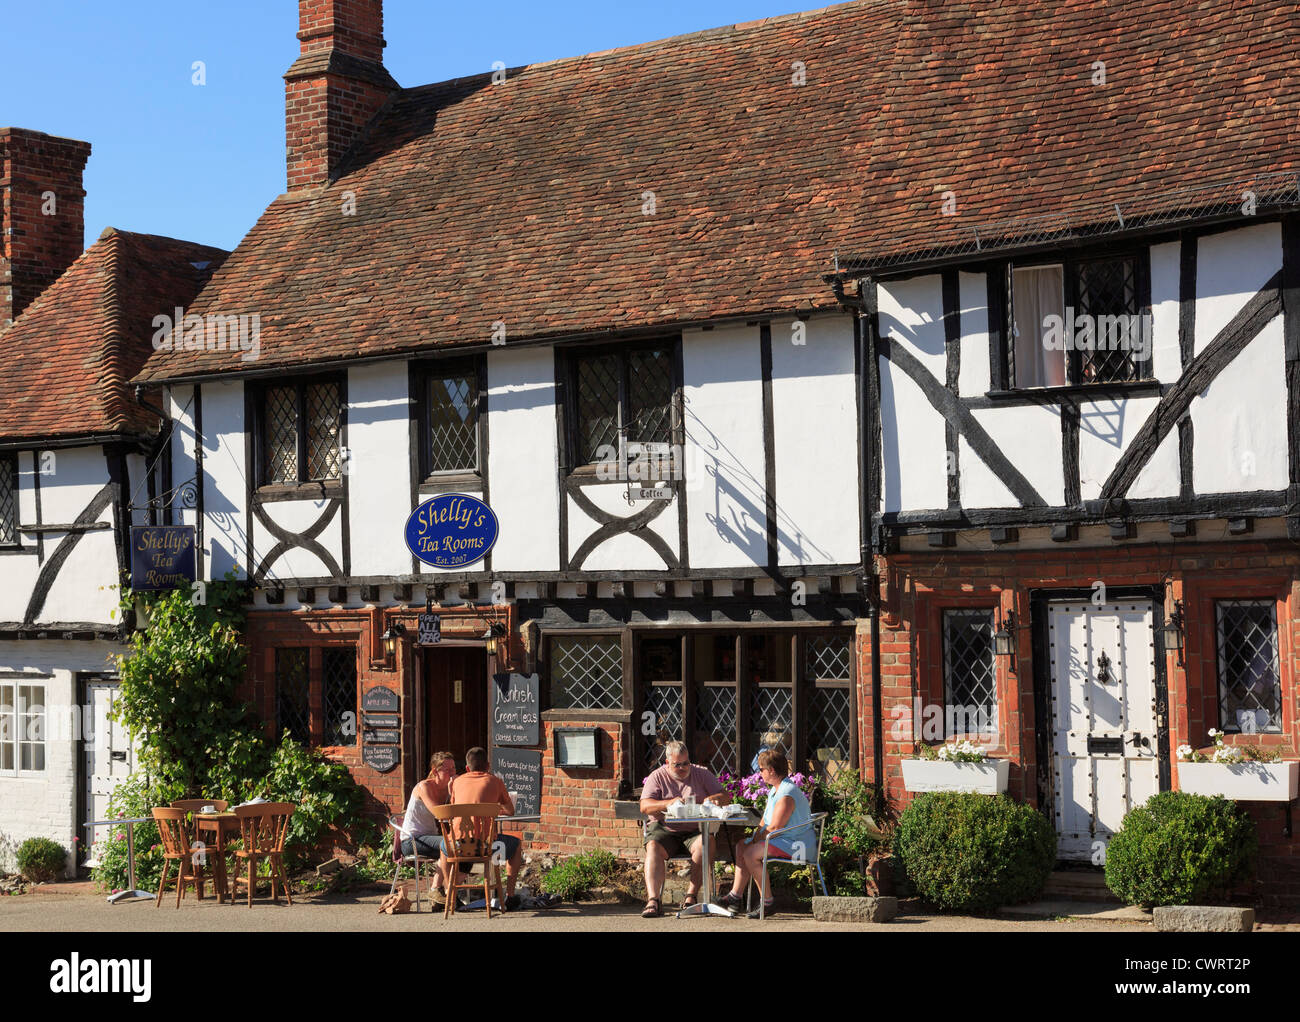 People dining outside Shelly's tea rooms serving cream teas in picturesque old Kentish village on the Pilgrims Way. Stock Photo